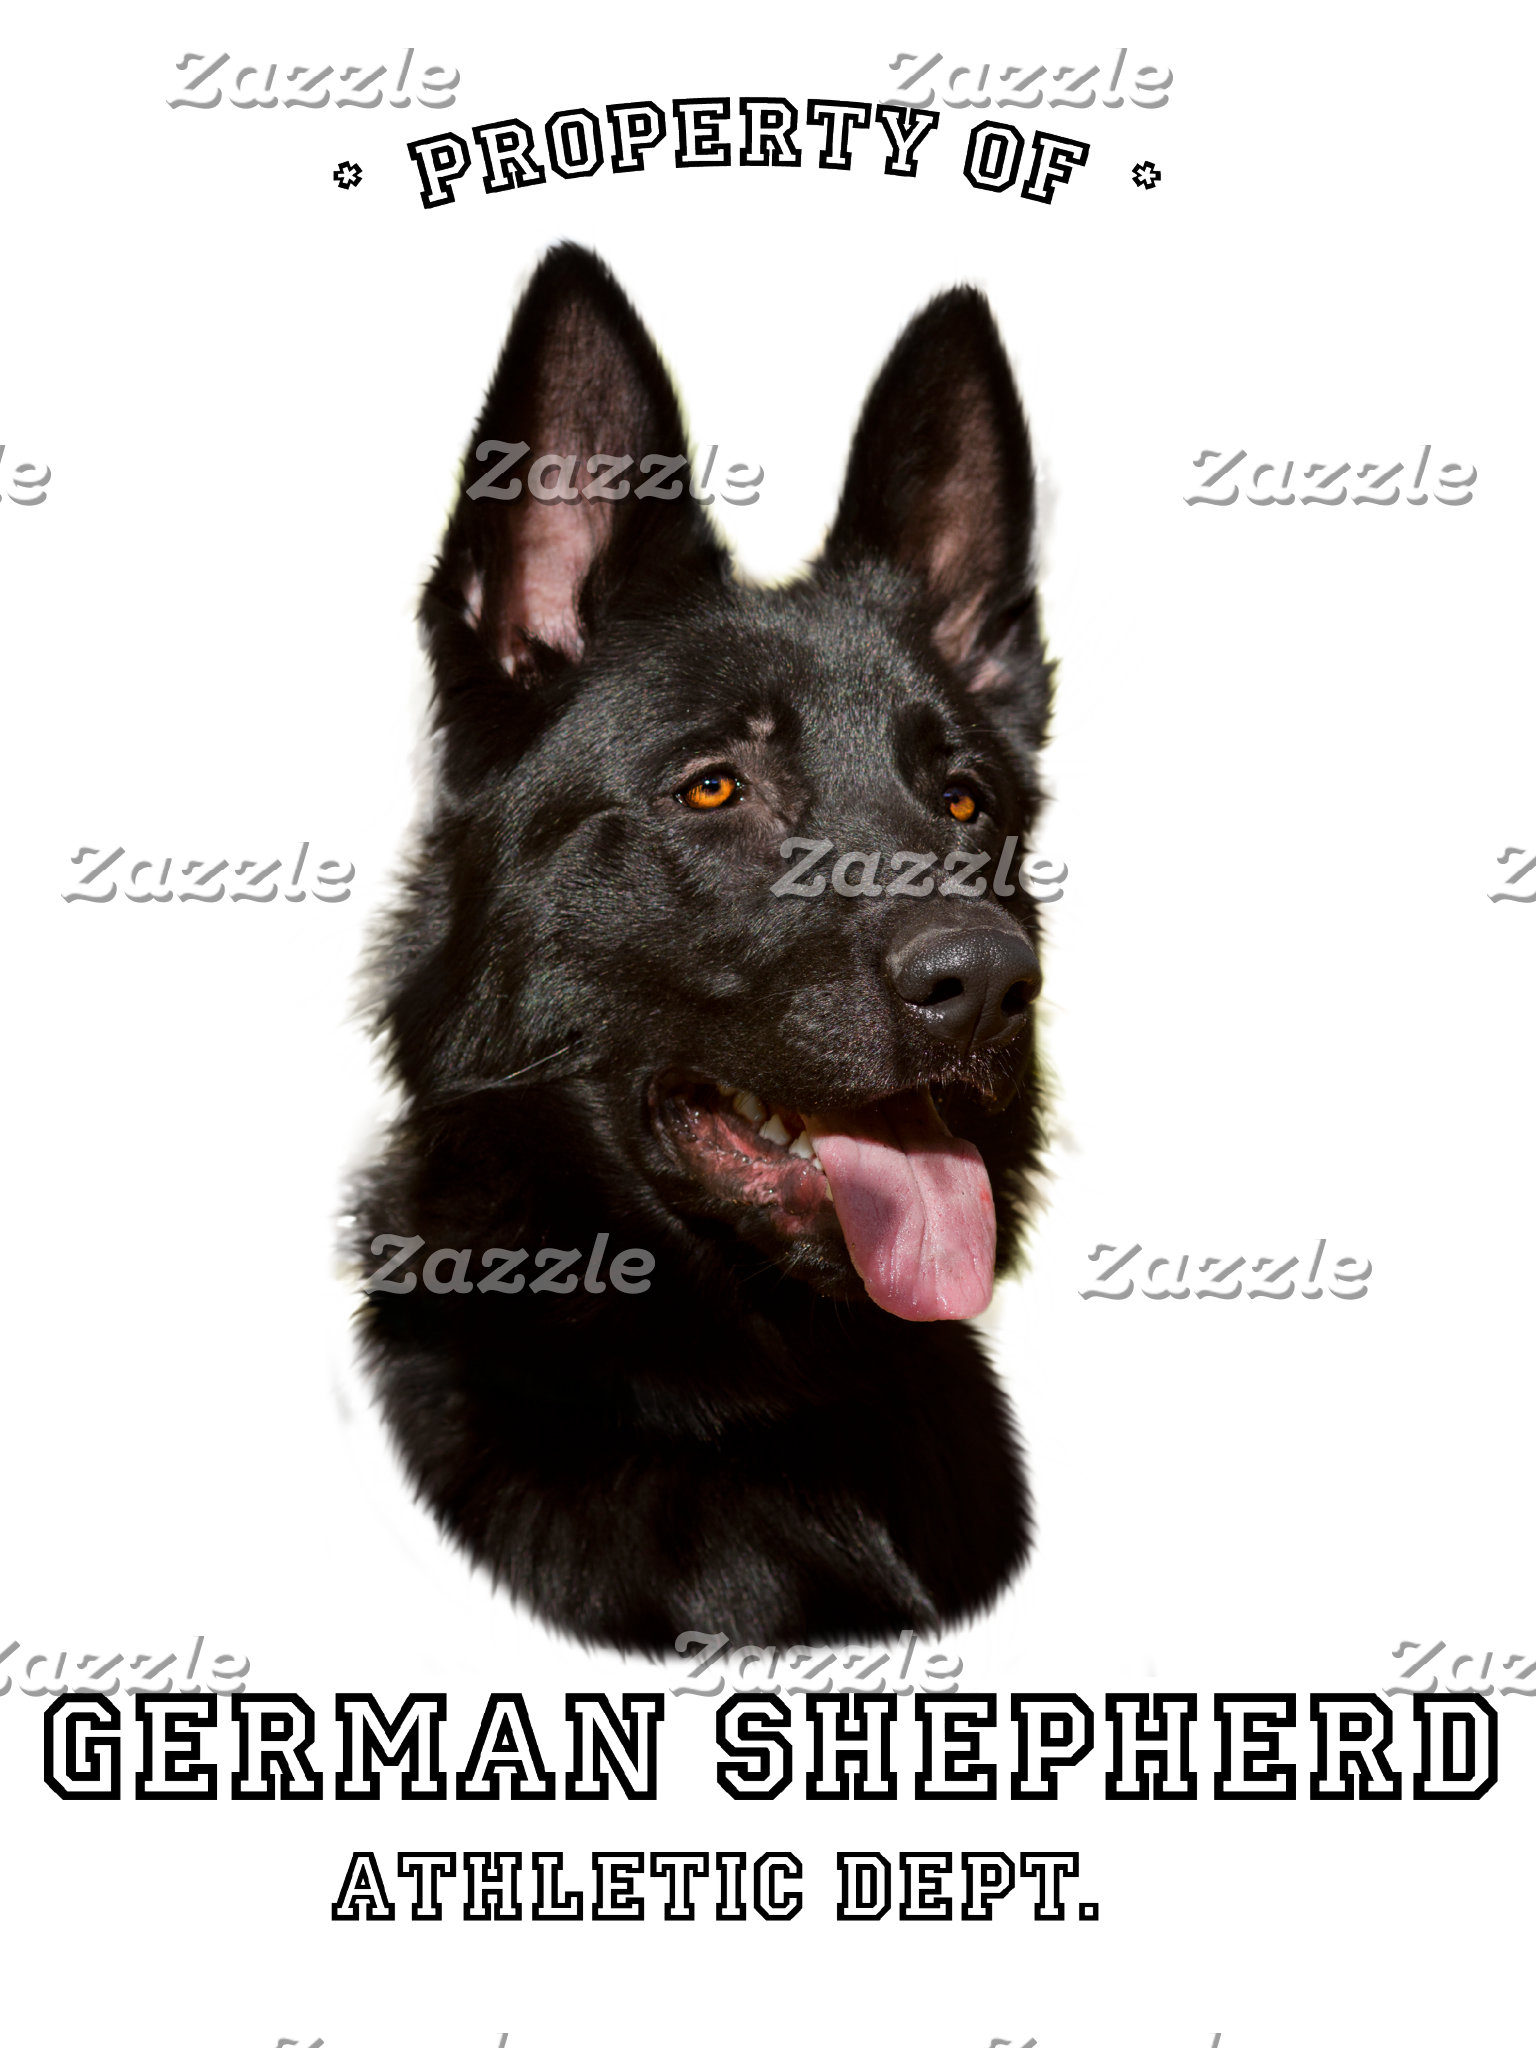 German Shepherd Athletics